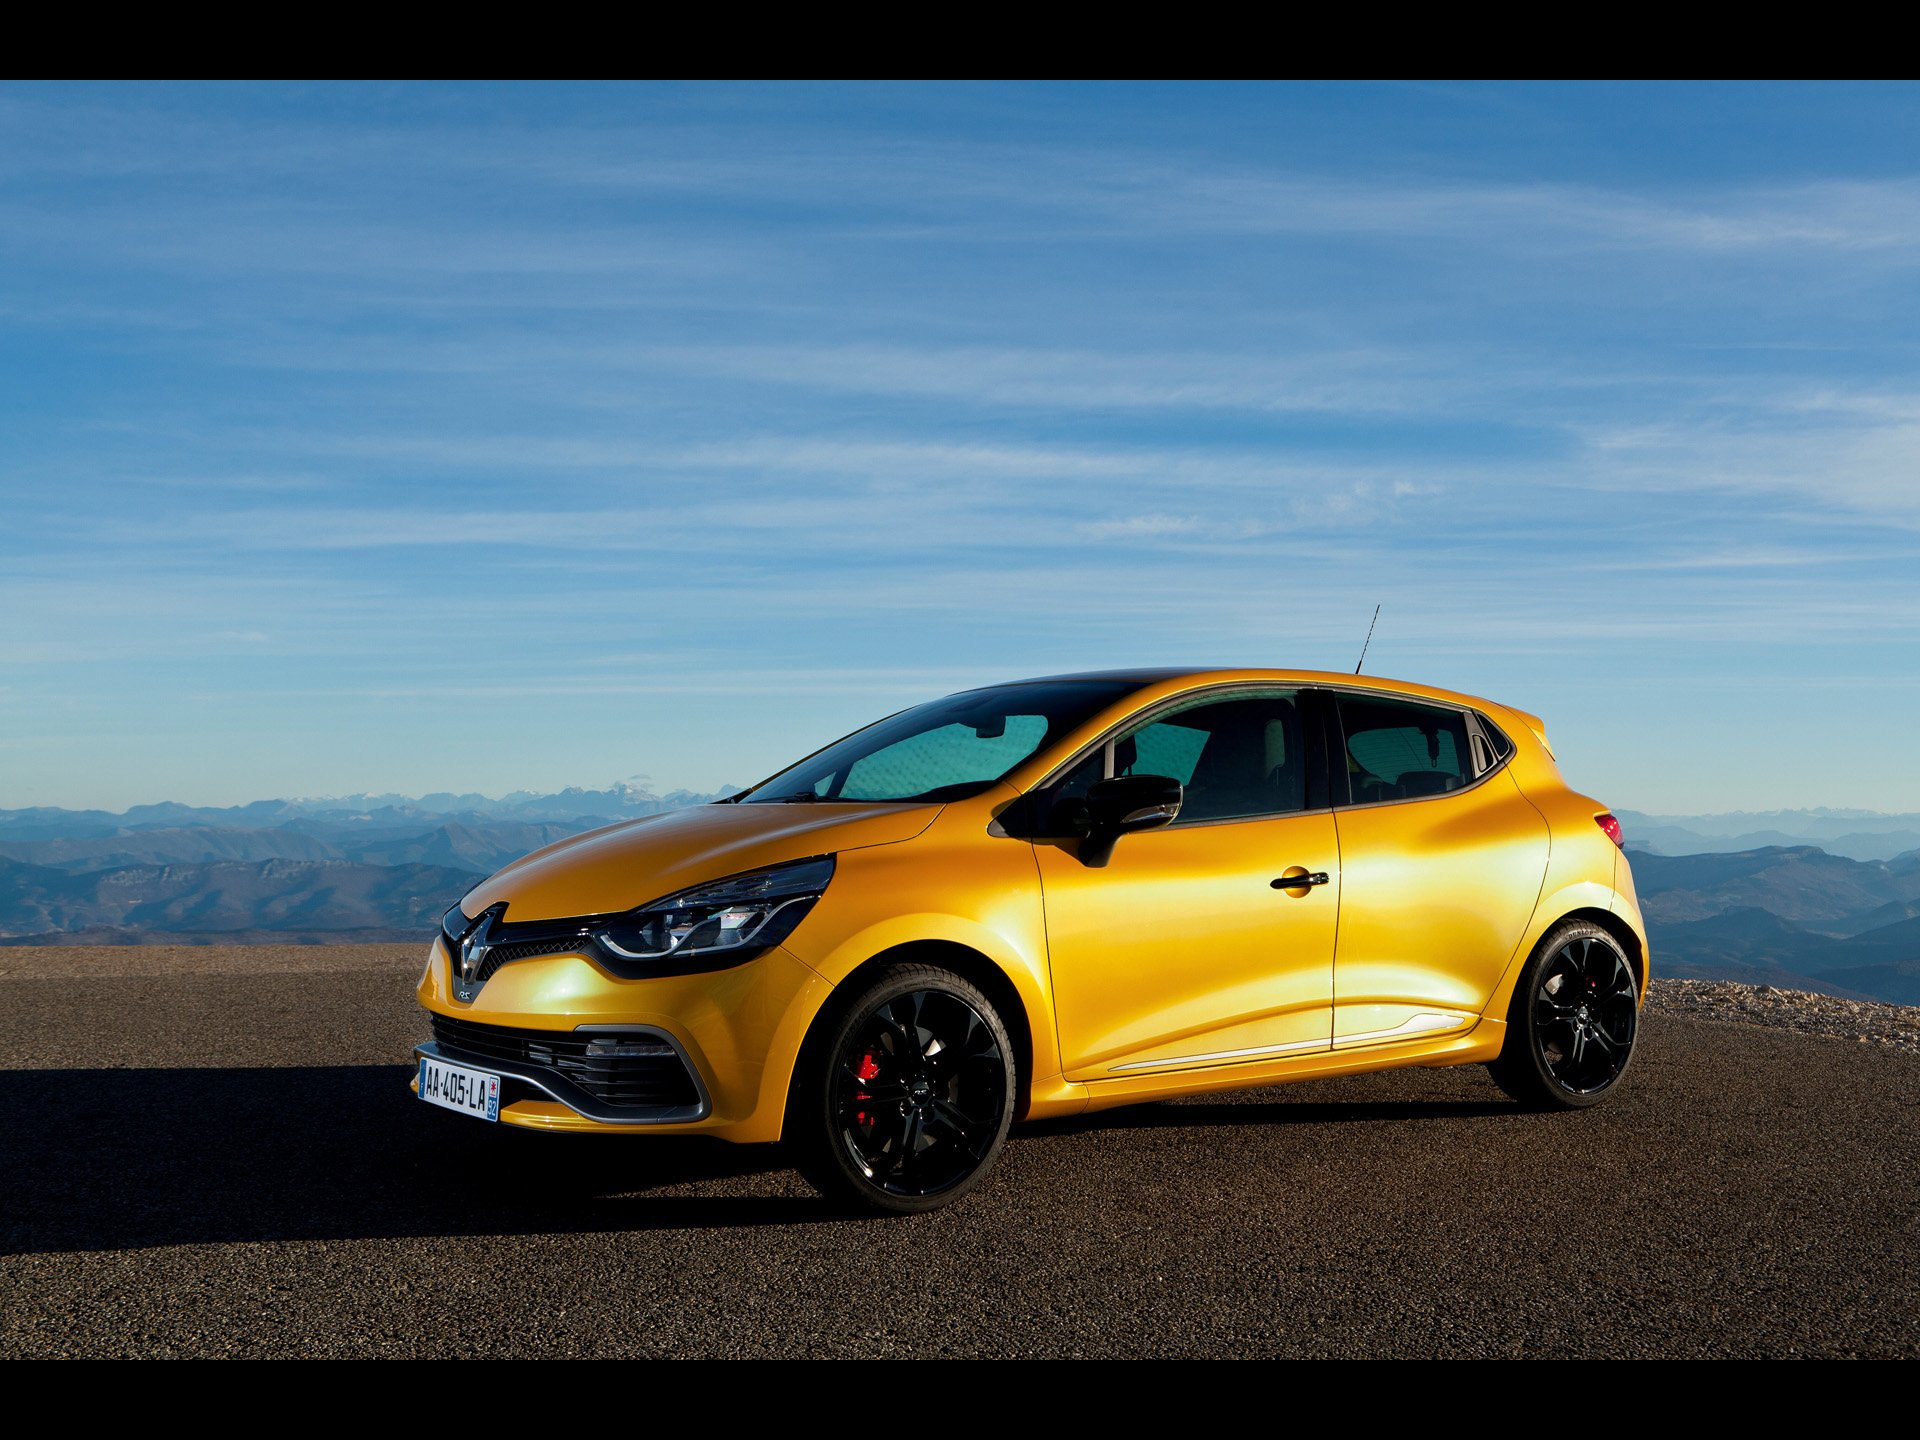 14 Renault Clio Hd Wallpapers Background Images Wallpaper Abyss